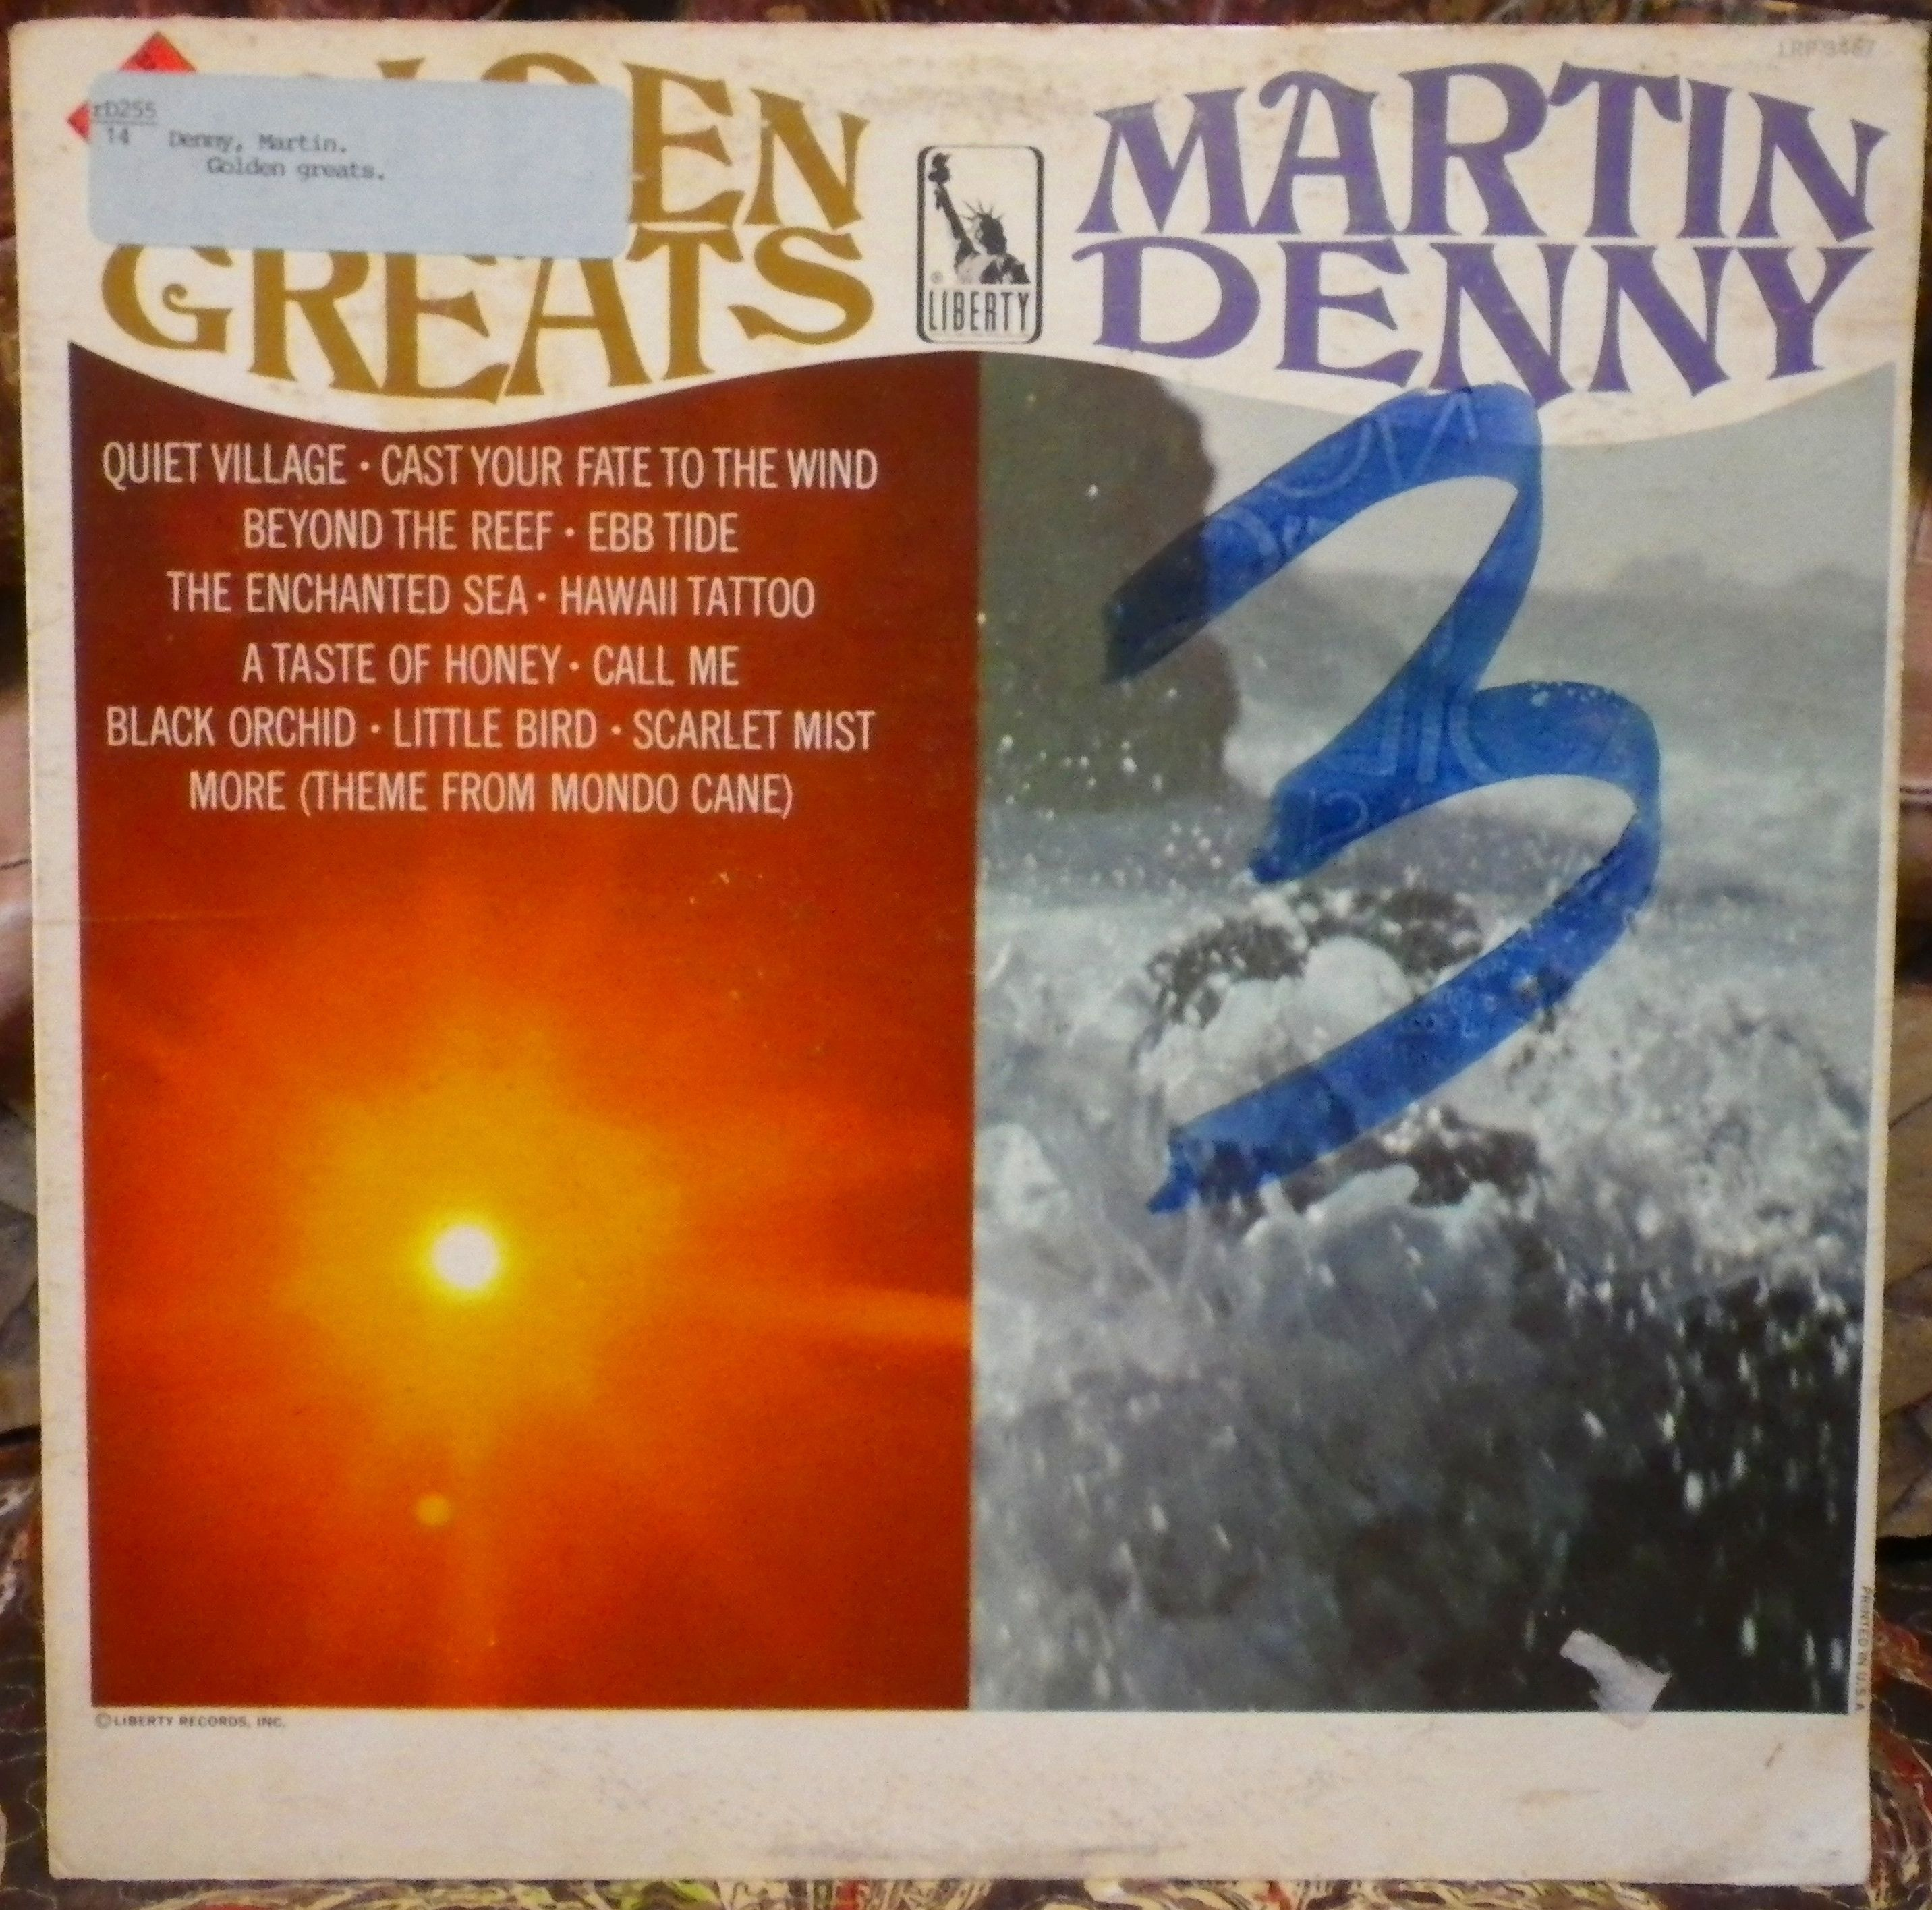 small resolution of martin denny golden greats los angeles calif liberty records lrp 3467 mono no date exotica record my hawaiian exotica record collection